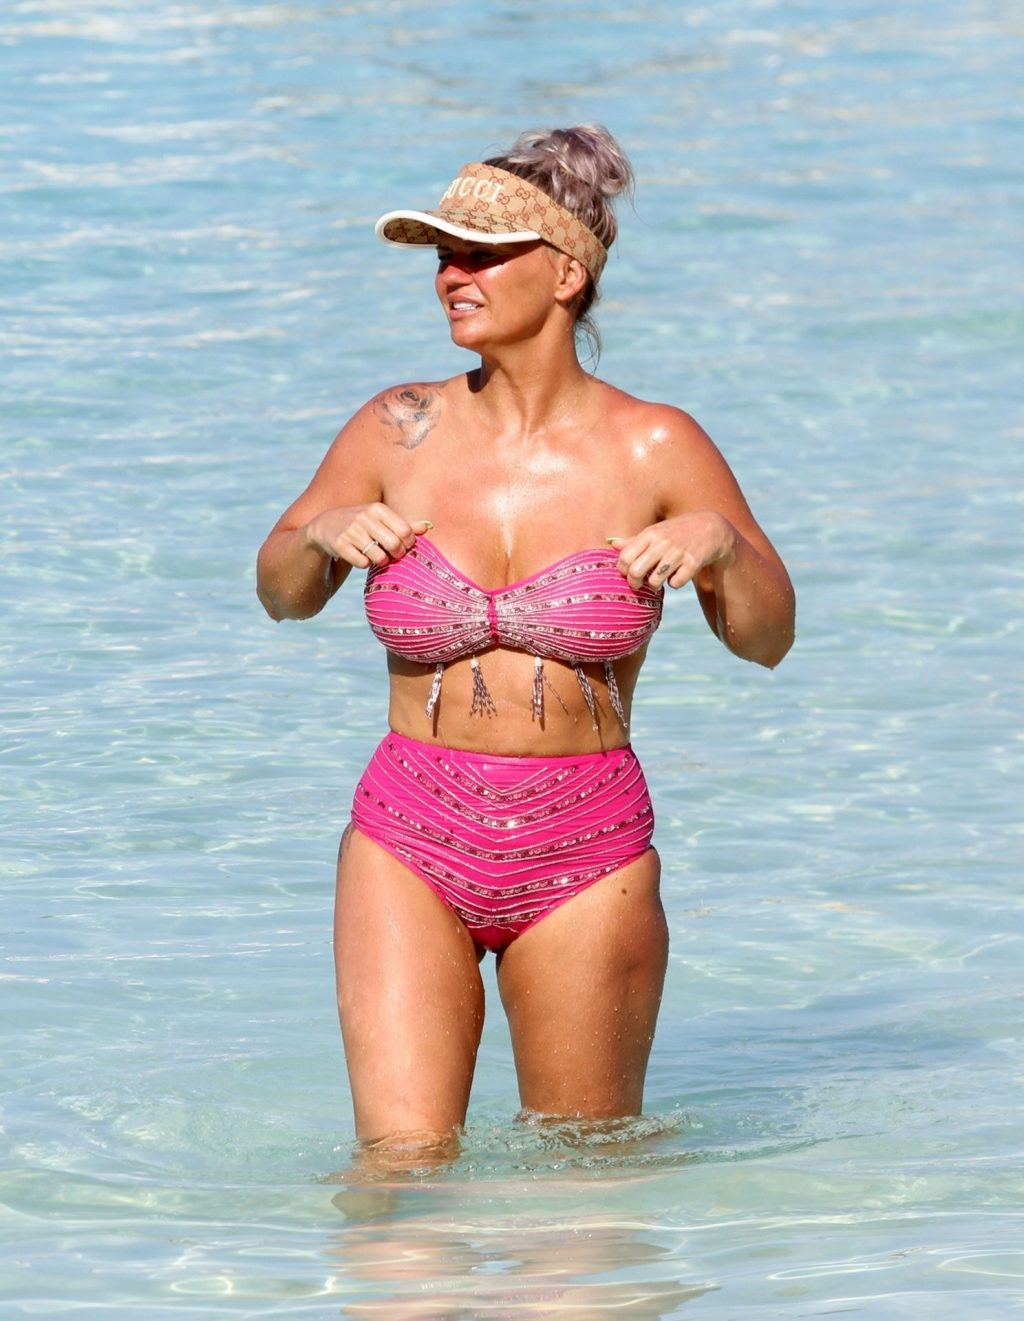 Kerry Katona Looks Stunning with Her New Sultry Physique (64 Photos)